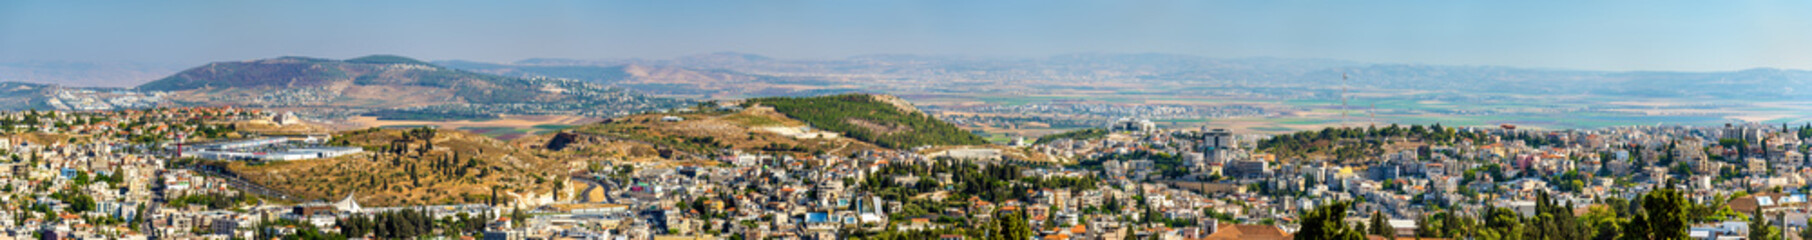 Panoramic view of Nazareth - Israel